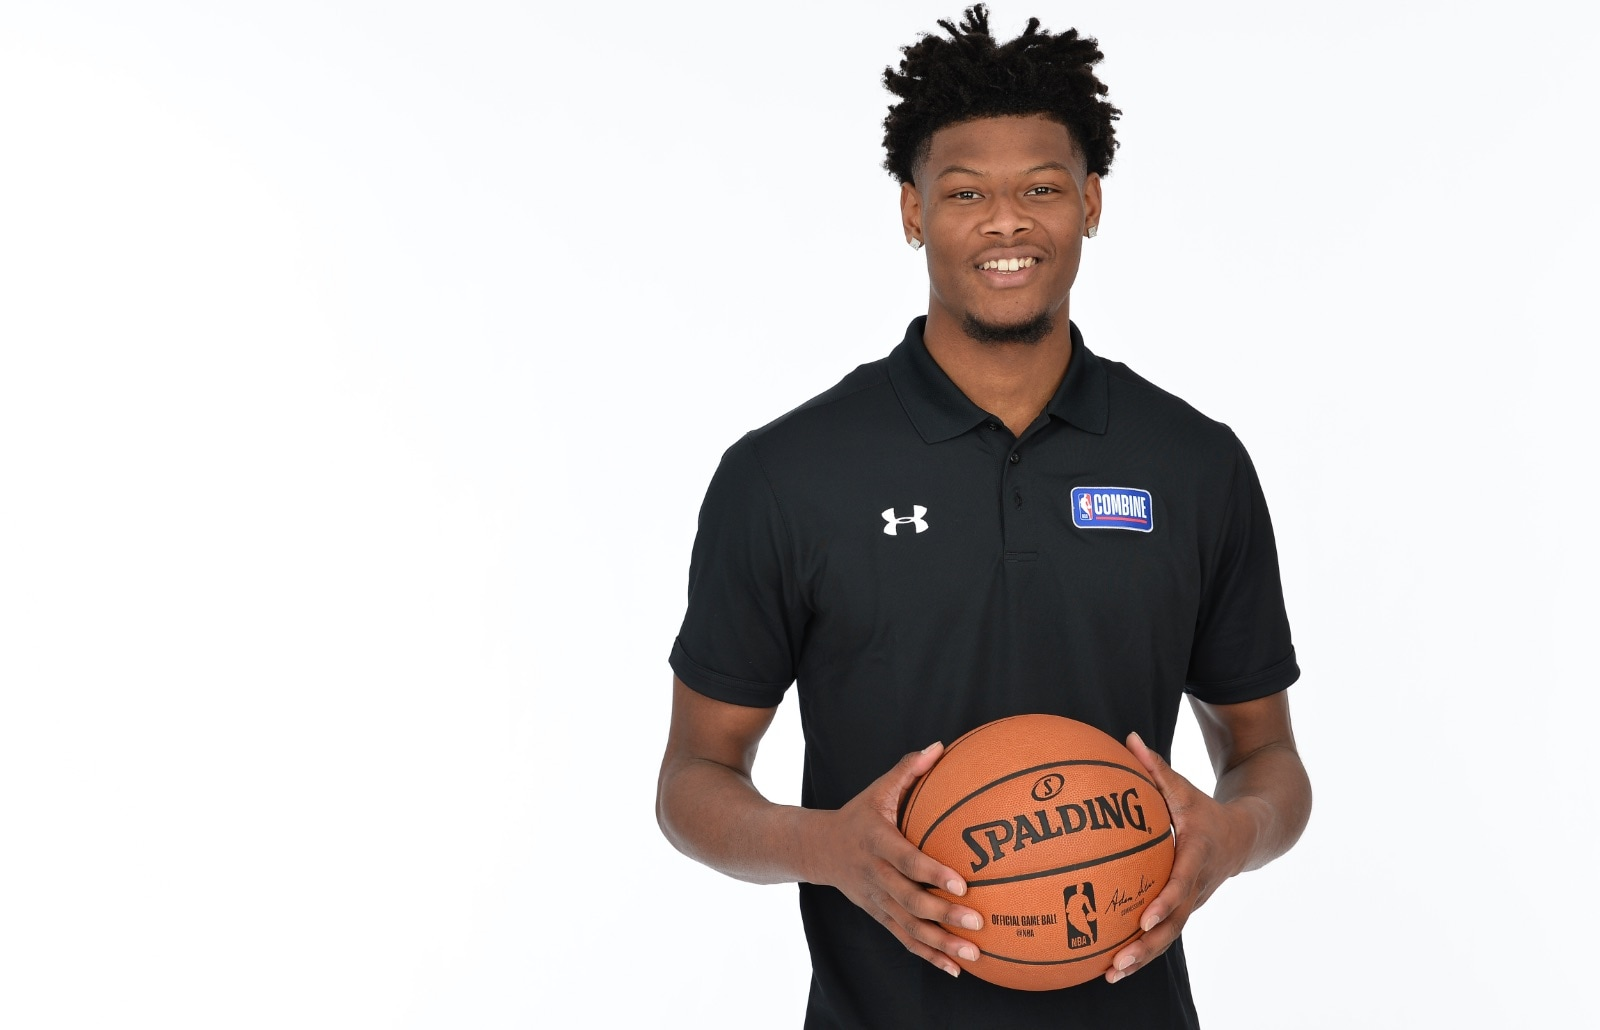 Cam Reddish poses for a portrait at the 2019 NBA Draft Combine on May 14, 2019 at the Chicago Hilton in Chicago, Illinois.